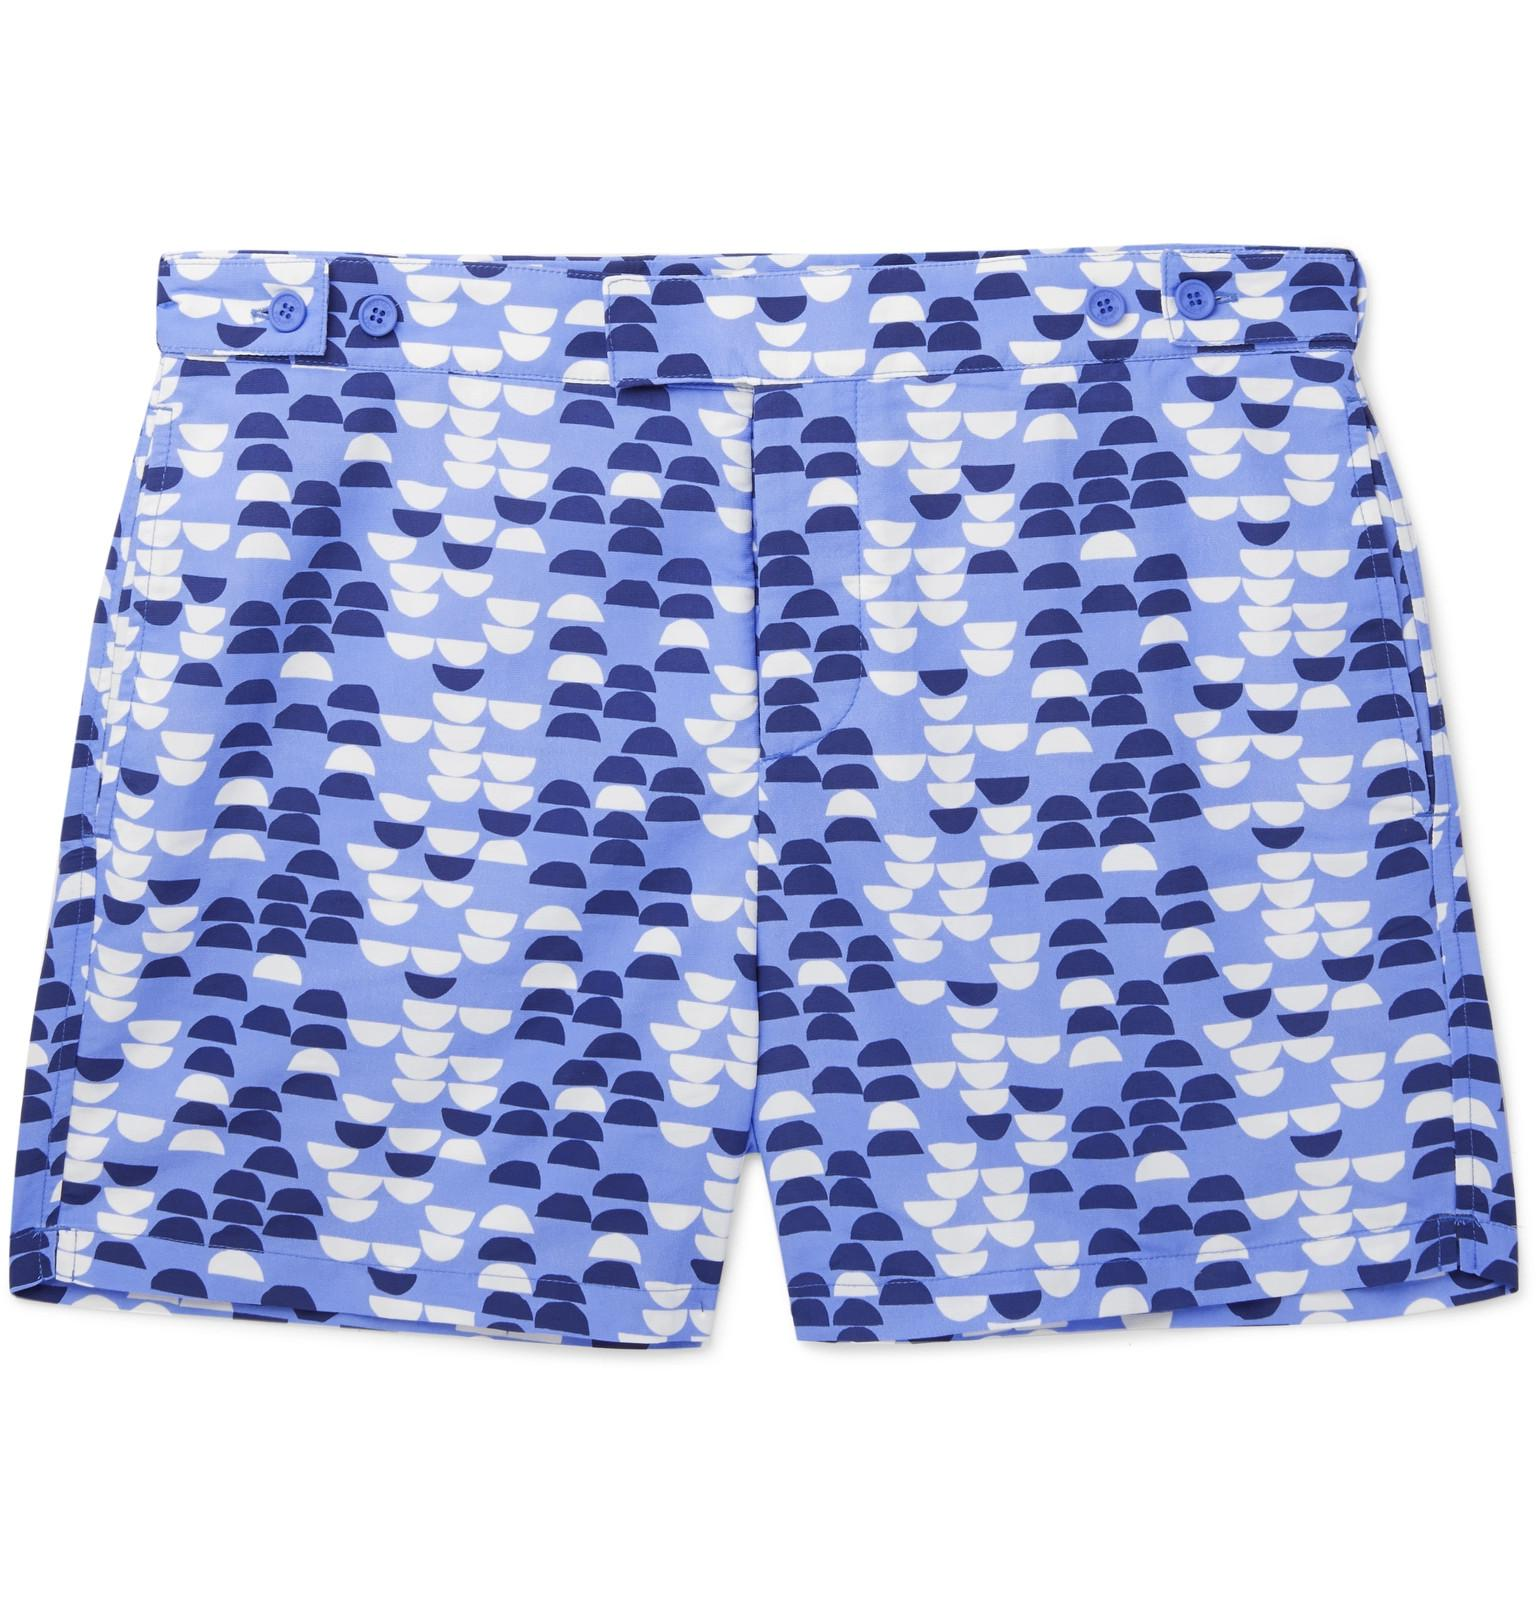 Shop Online Outlet For Sale Bossa Short-length Printed Swim Shorts Frescobol Carioca Latest Cheap Online Ebay Cheap Price Cheap Outlet rO54c1Rsv